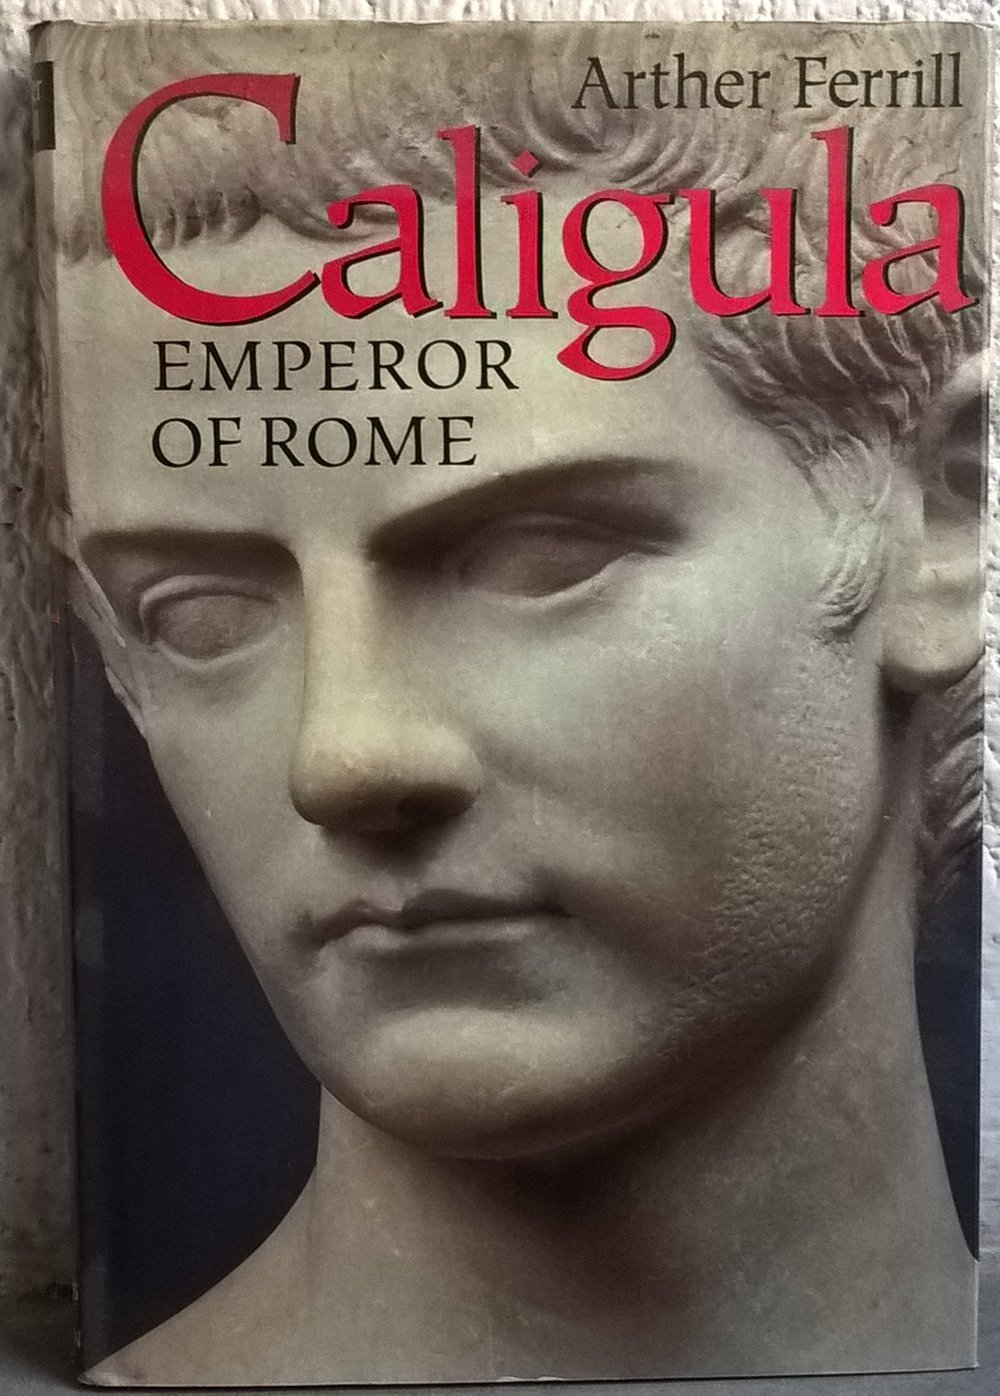 a short biography of caligula a colorful emperor of rome Lucius domitius ahenobarbus nero nero claudius caesar drusus germanicus (roman emperor notorious for his monstrous vice and fantastic luxury (was said to have started a fire that destroyed much of rome in 64) but the empire remained prosperous during his rule (37-68).